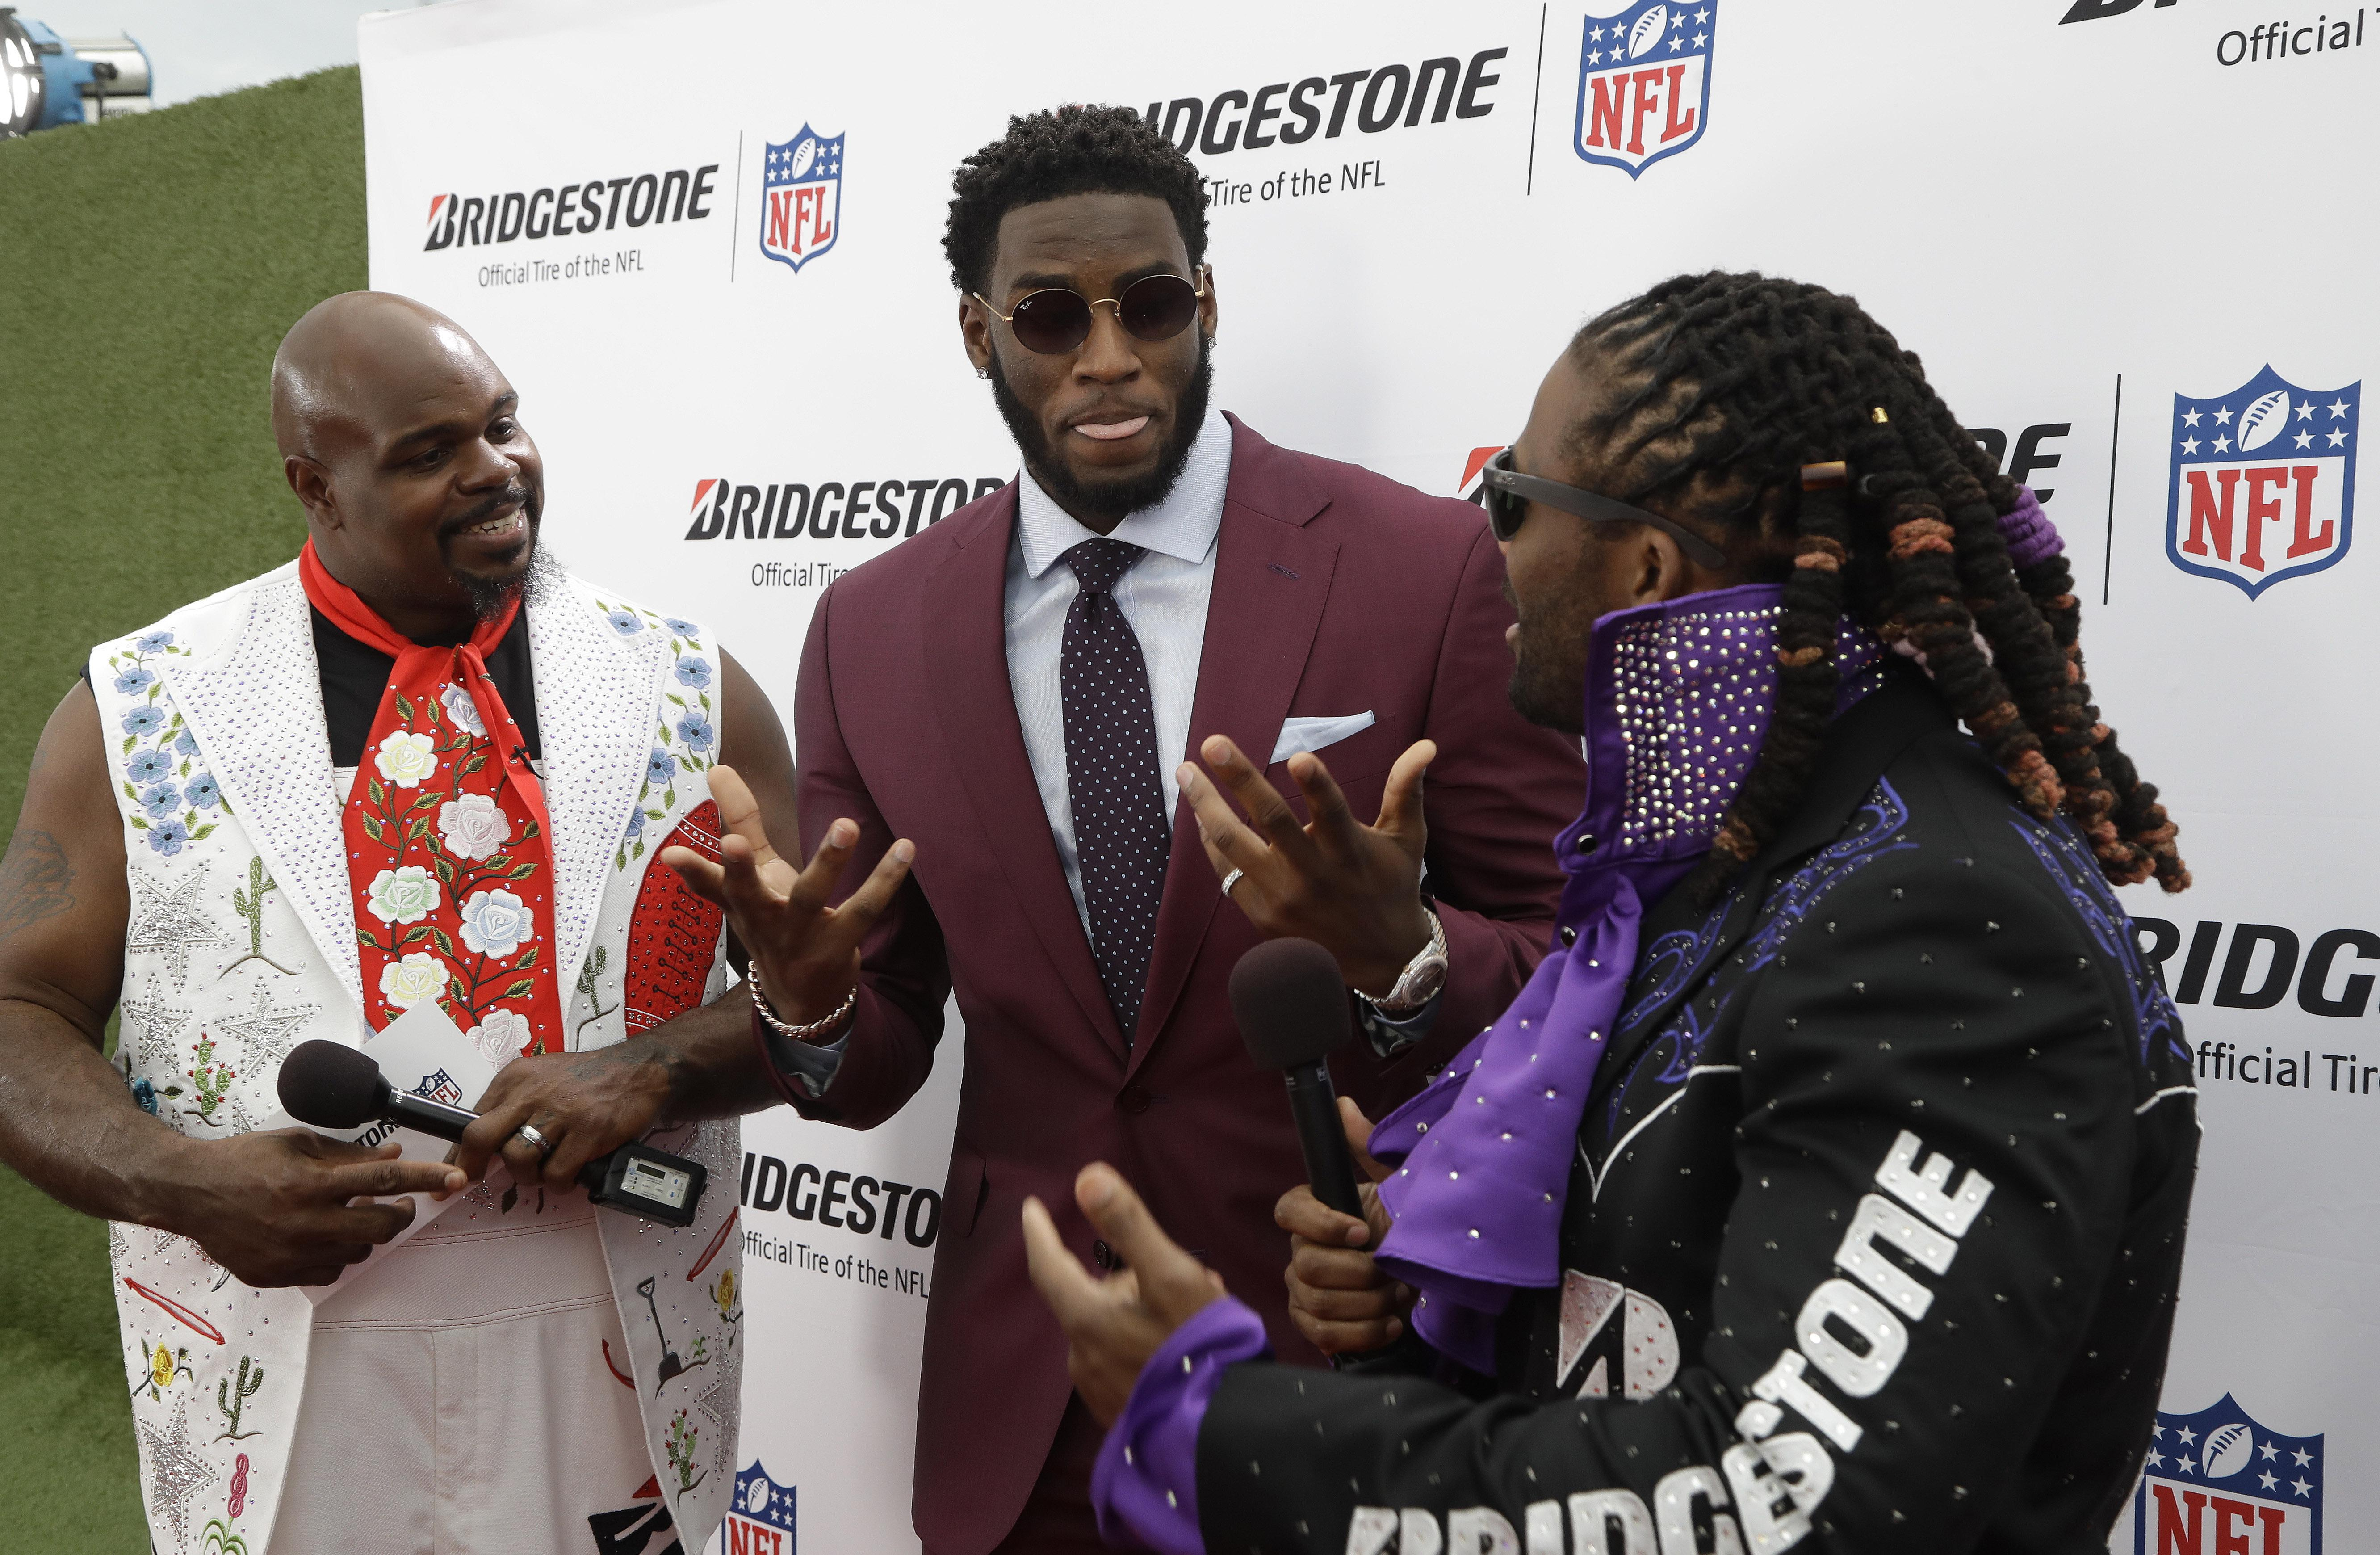 01ad11005 Hitting NFL draft s red carpet means dressing up for moment